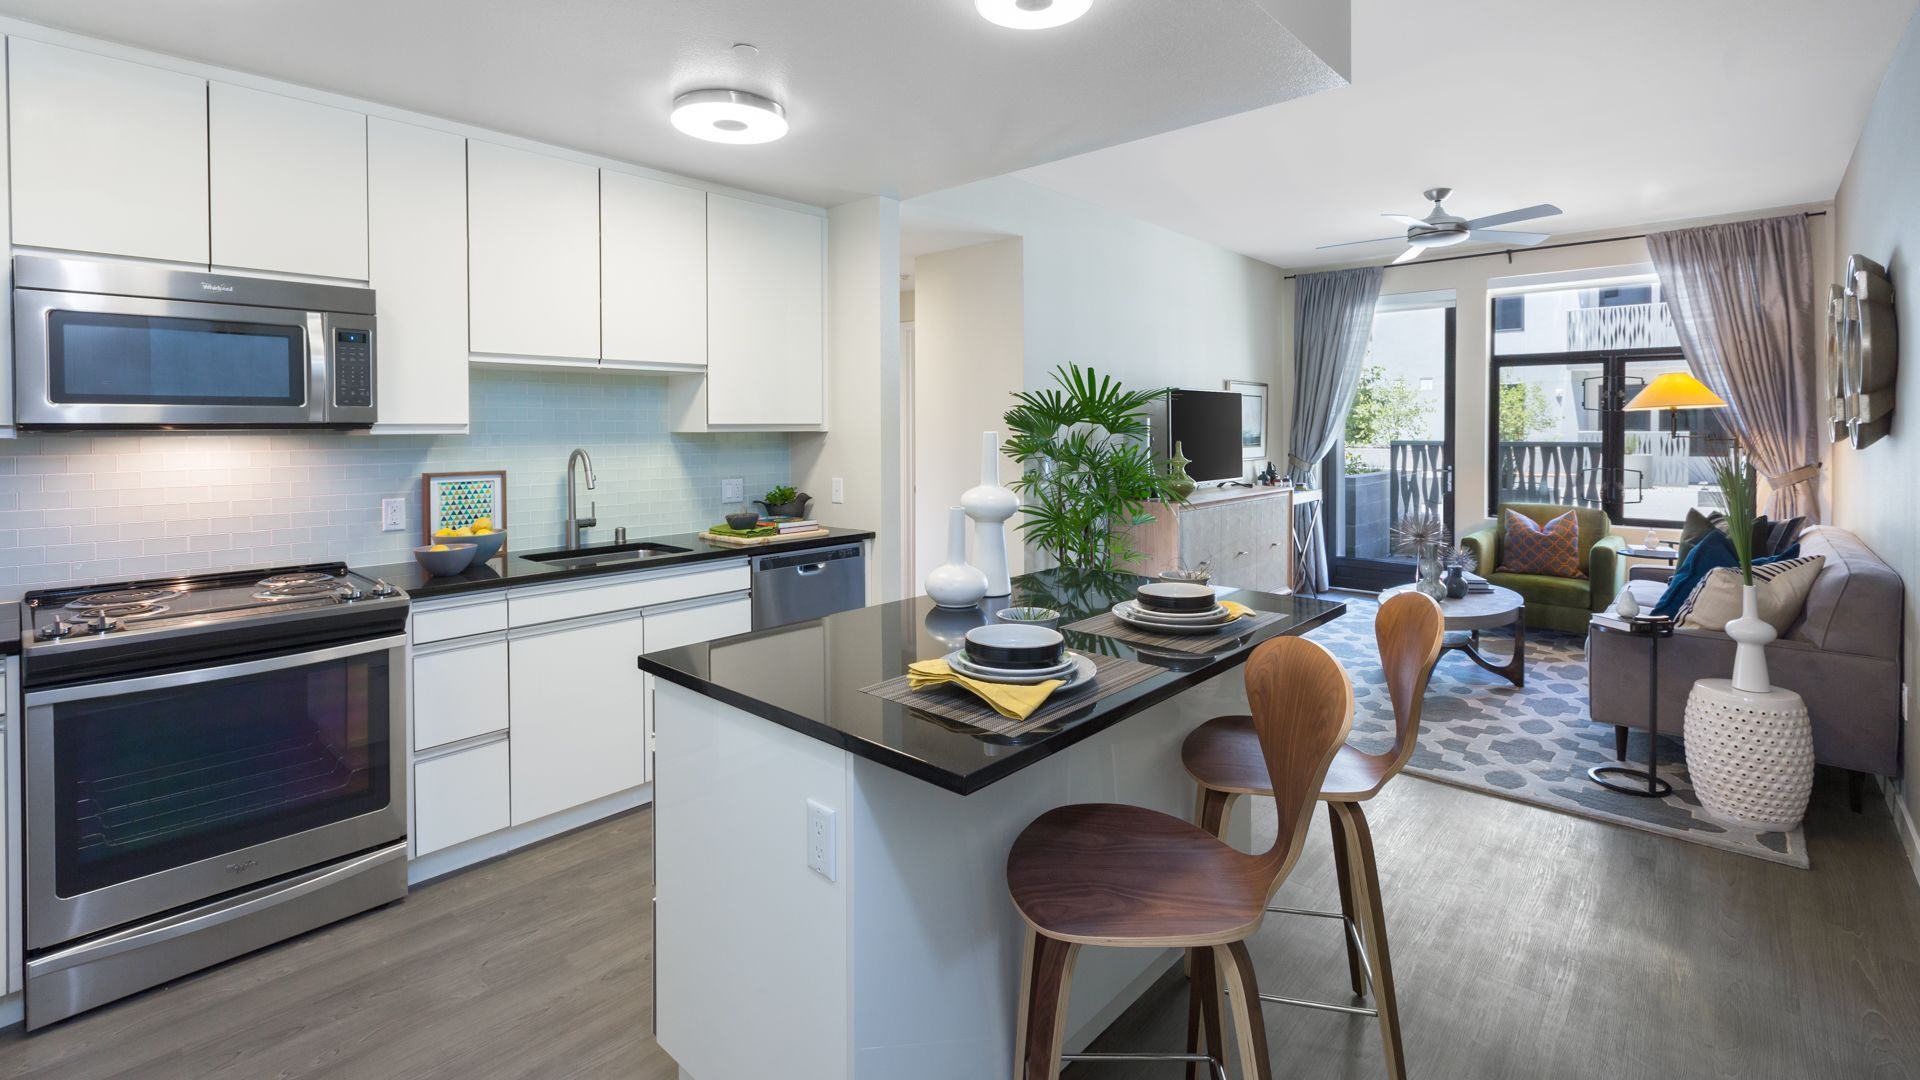 Azure Apartments - Kitchen and Living Room